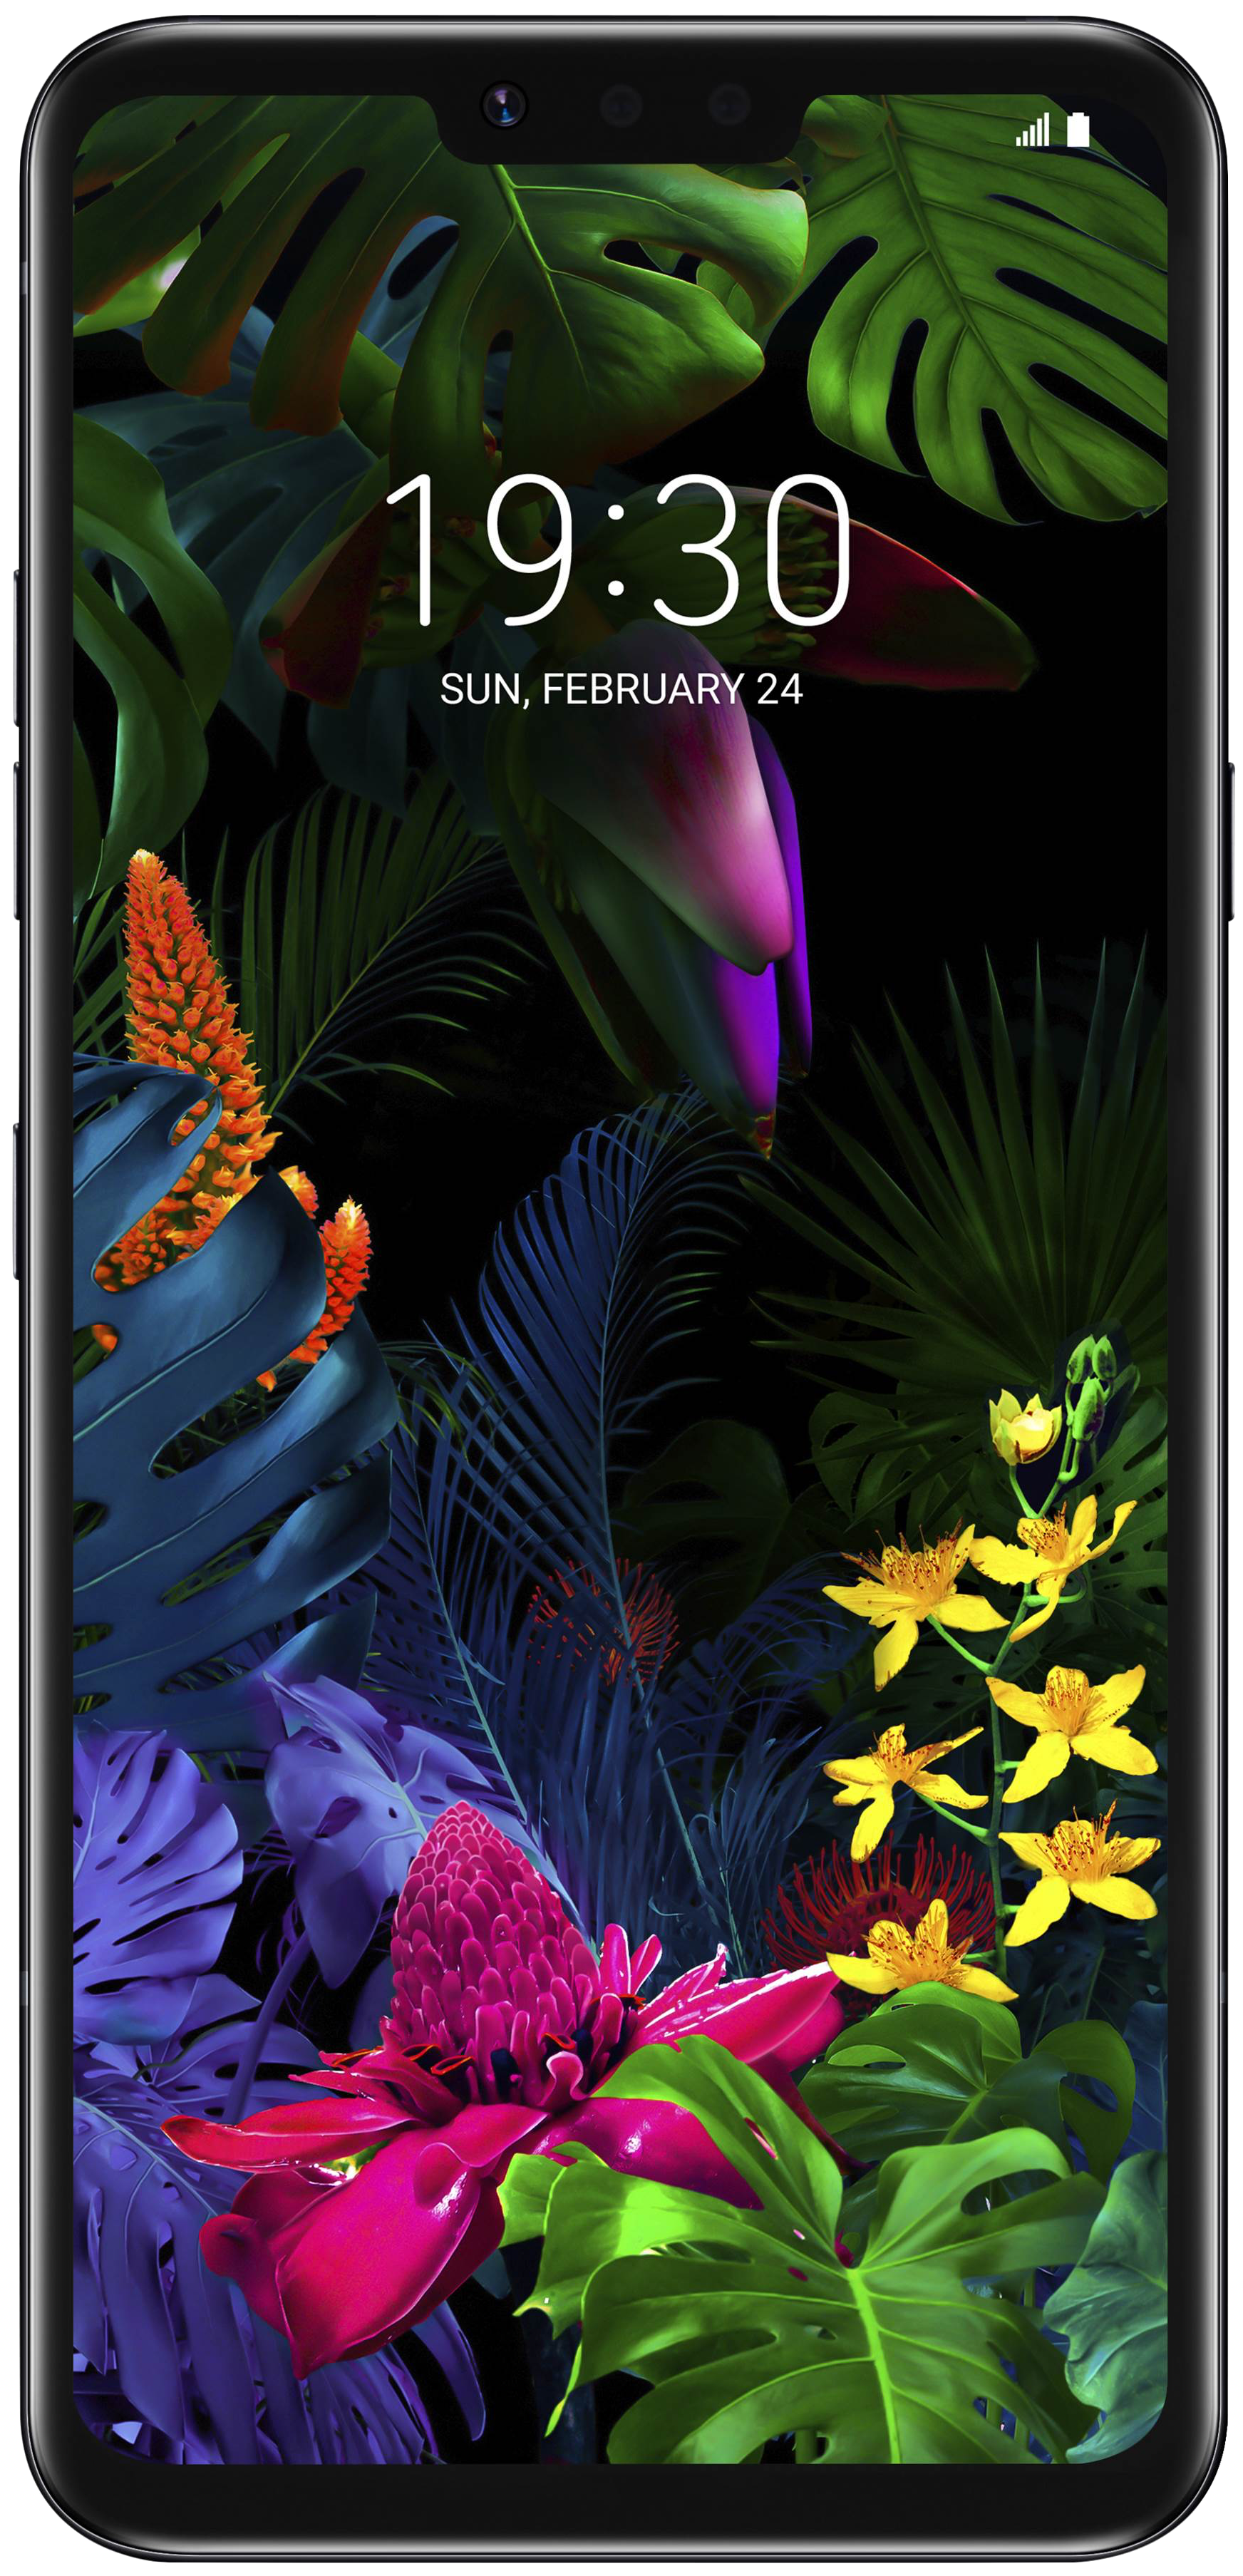 LG G8 ThinQ - Wikipedia